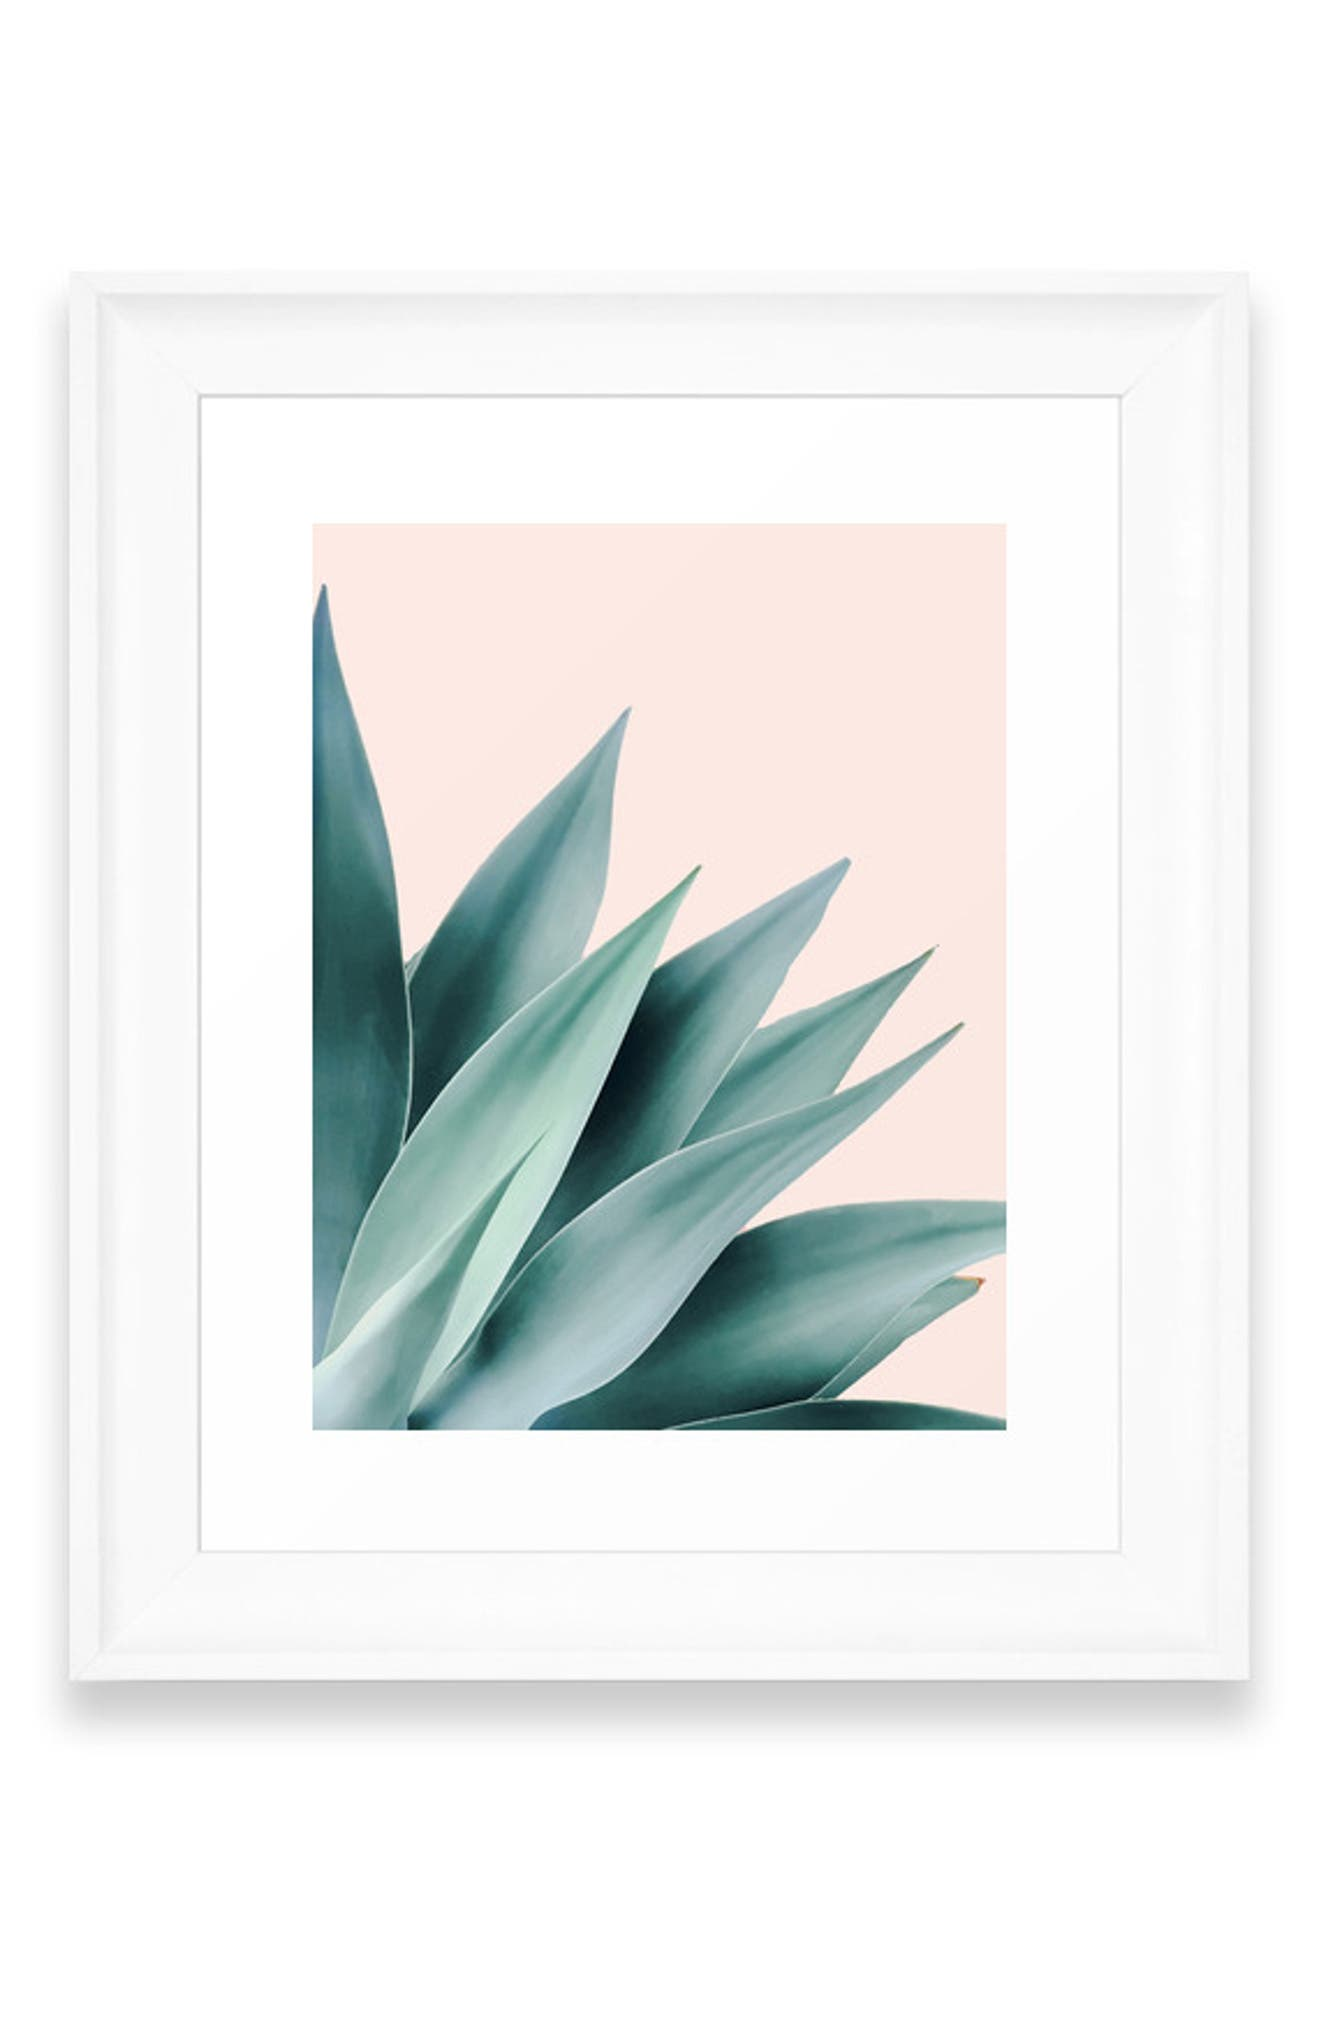 Bring natural style into your home with a matte-finish art print available on its own or in a ready-to-hang frame. Style Name: Deny Designs Agave Flare Ii Art Print. Style Number: 5868607. Available in stores.